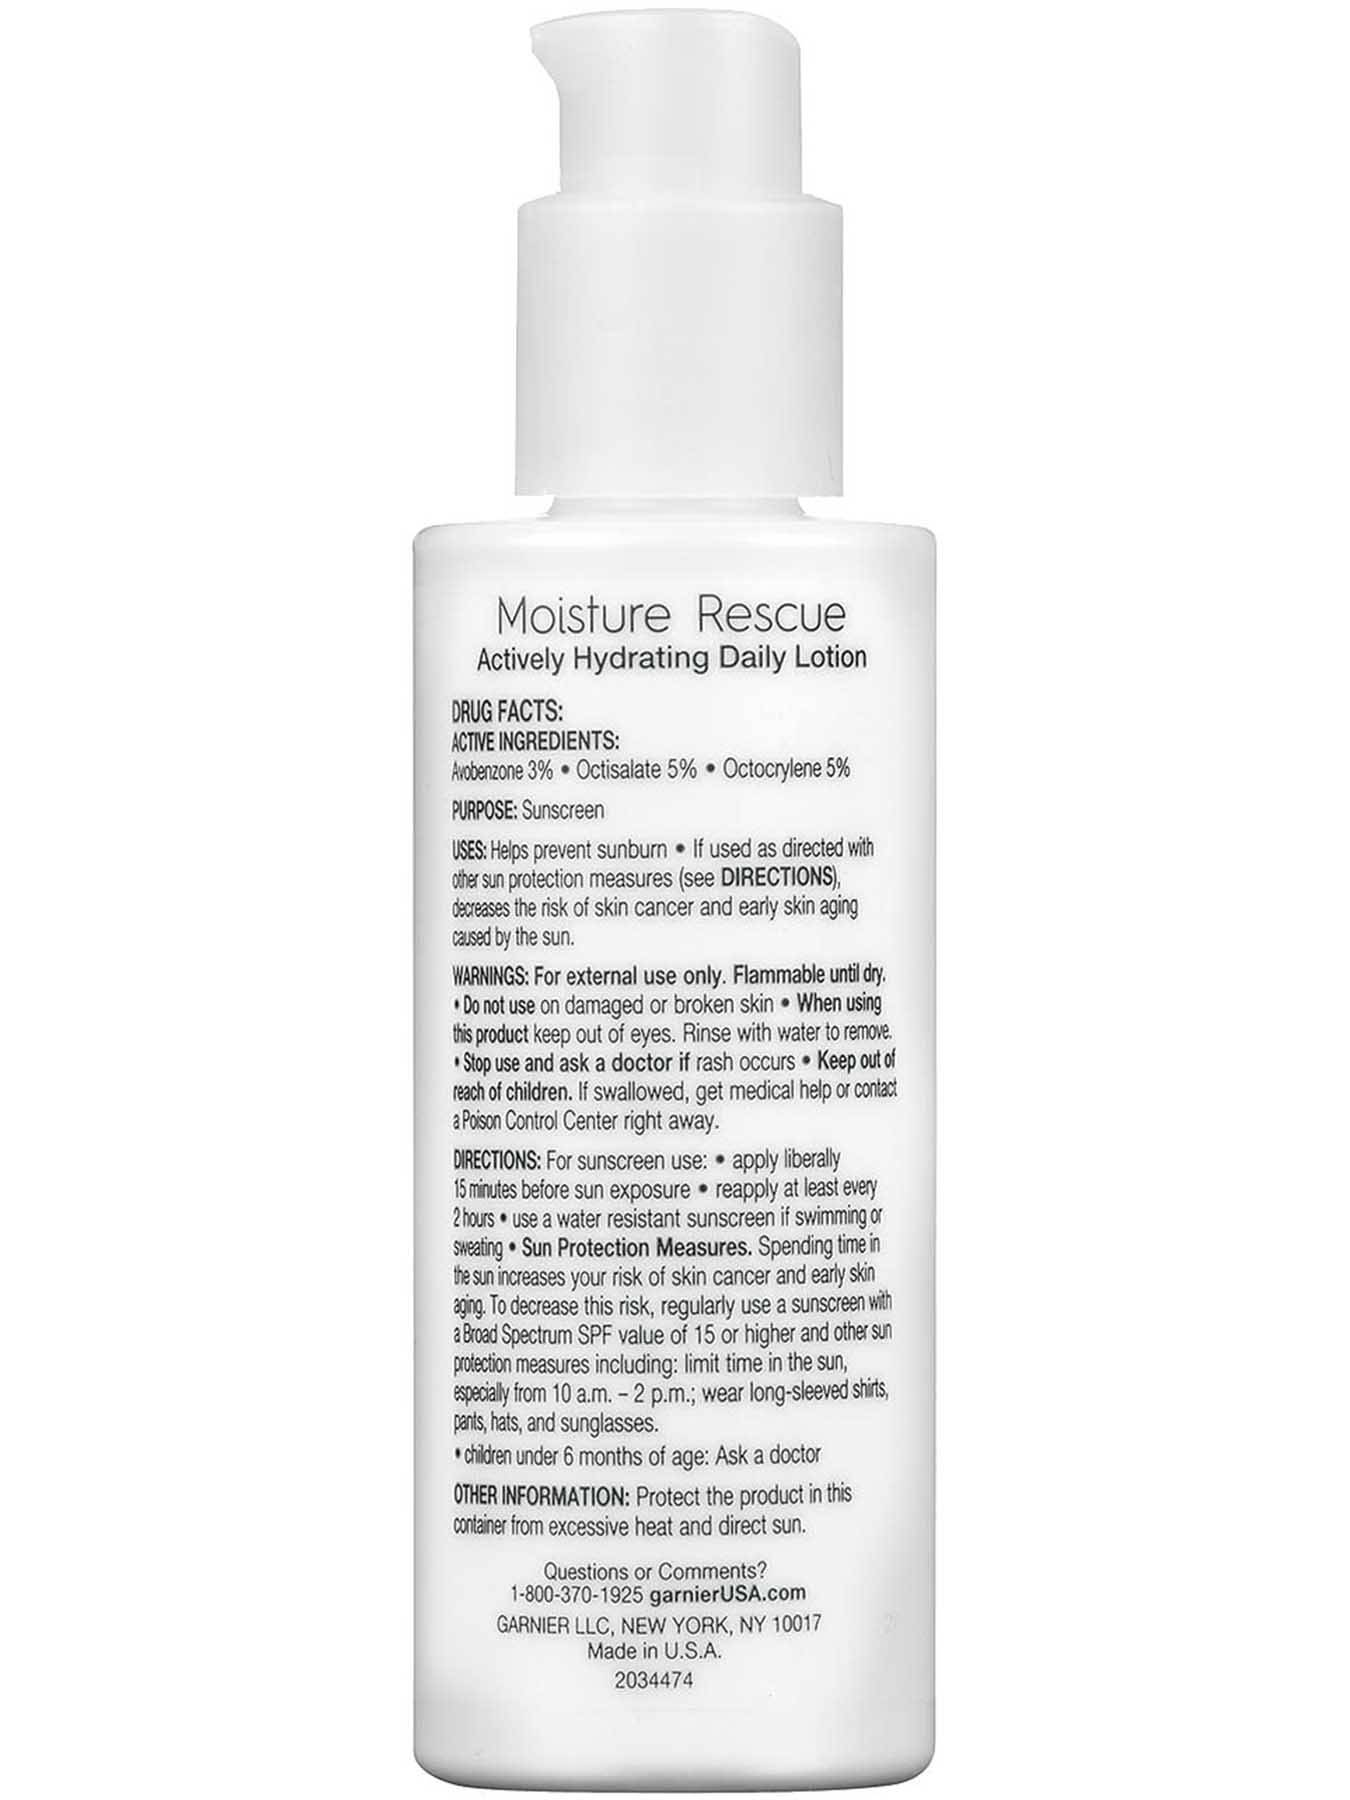 Moisture Rescue Broad Spectrum SPF 15, Fragrance Free, Actively Hydrating Daily Lotion.